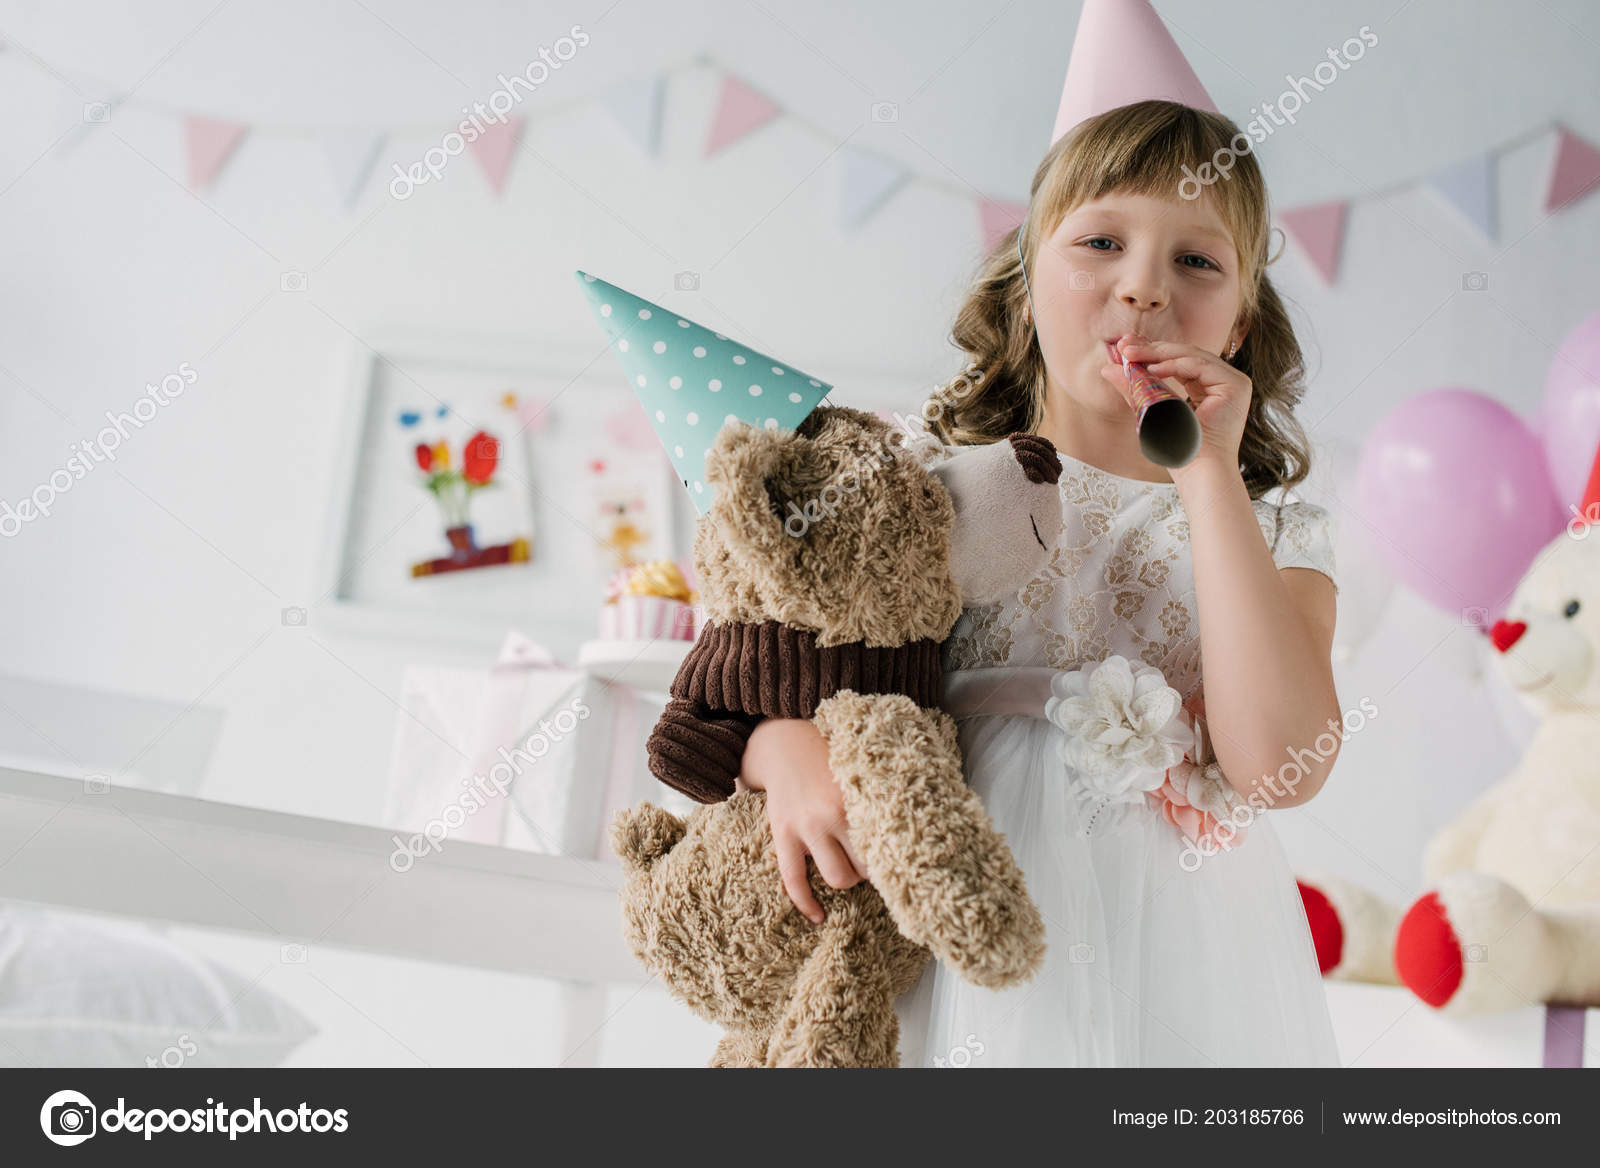 Happy Birthday Child Cone Blowing Party Horn Holding Teddy Bear Stockfoto